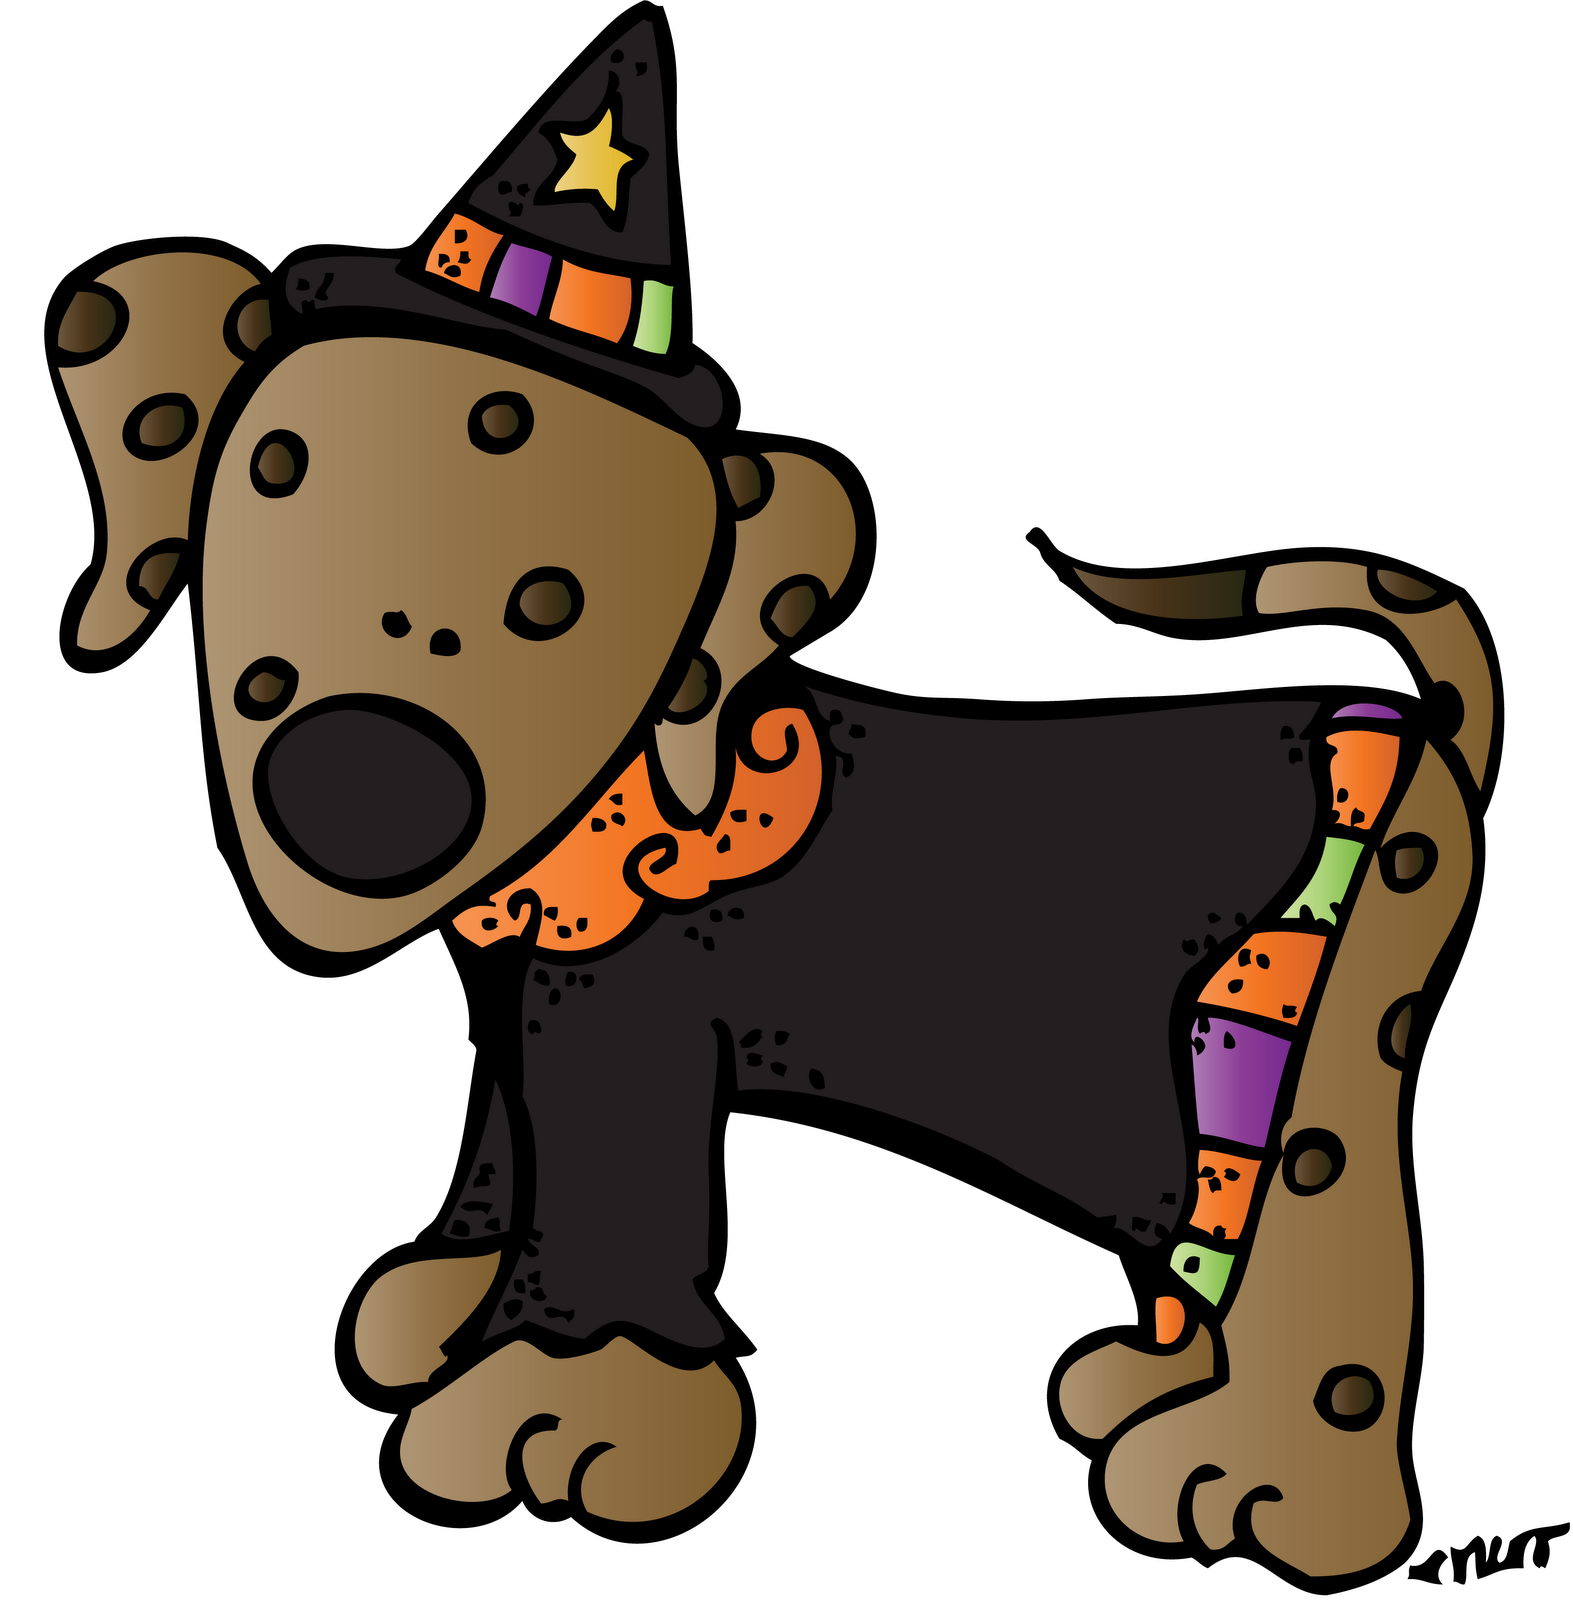 Free clipart for halloween and thanksgiving clipart royalty free library Melonheadz Thanksgiving | Happy Howloween week! :) | Clip Art ... clipart royalty free library